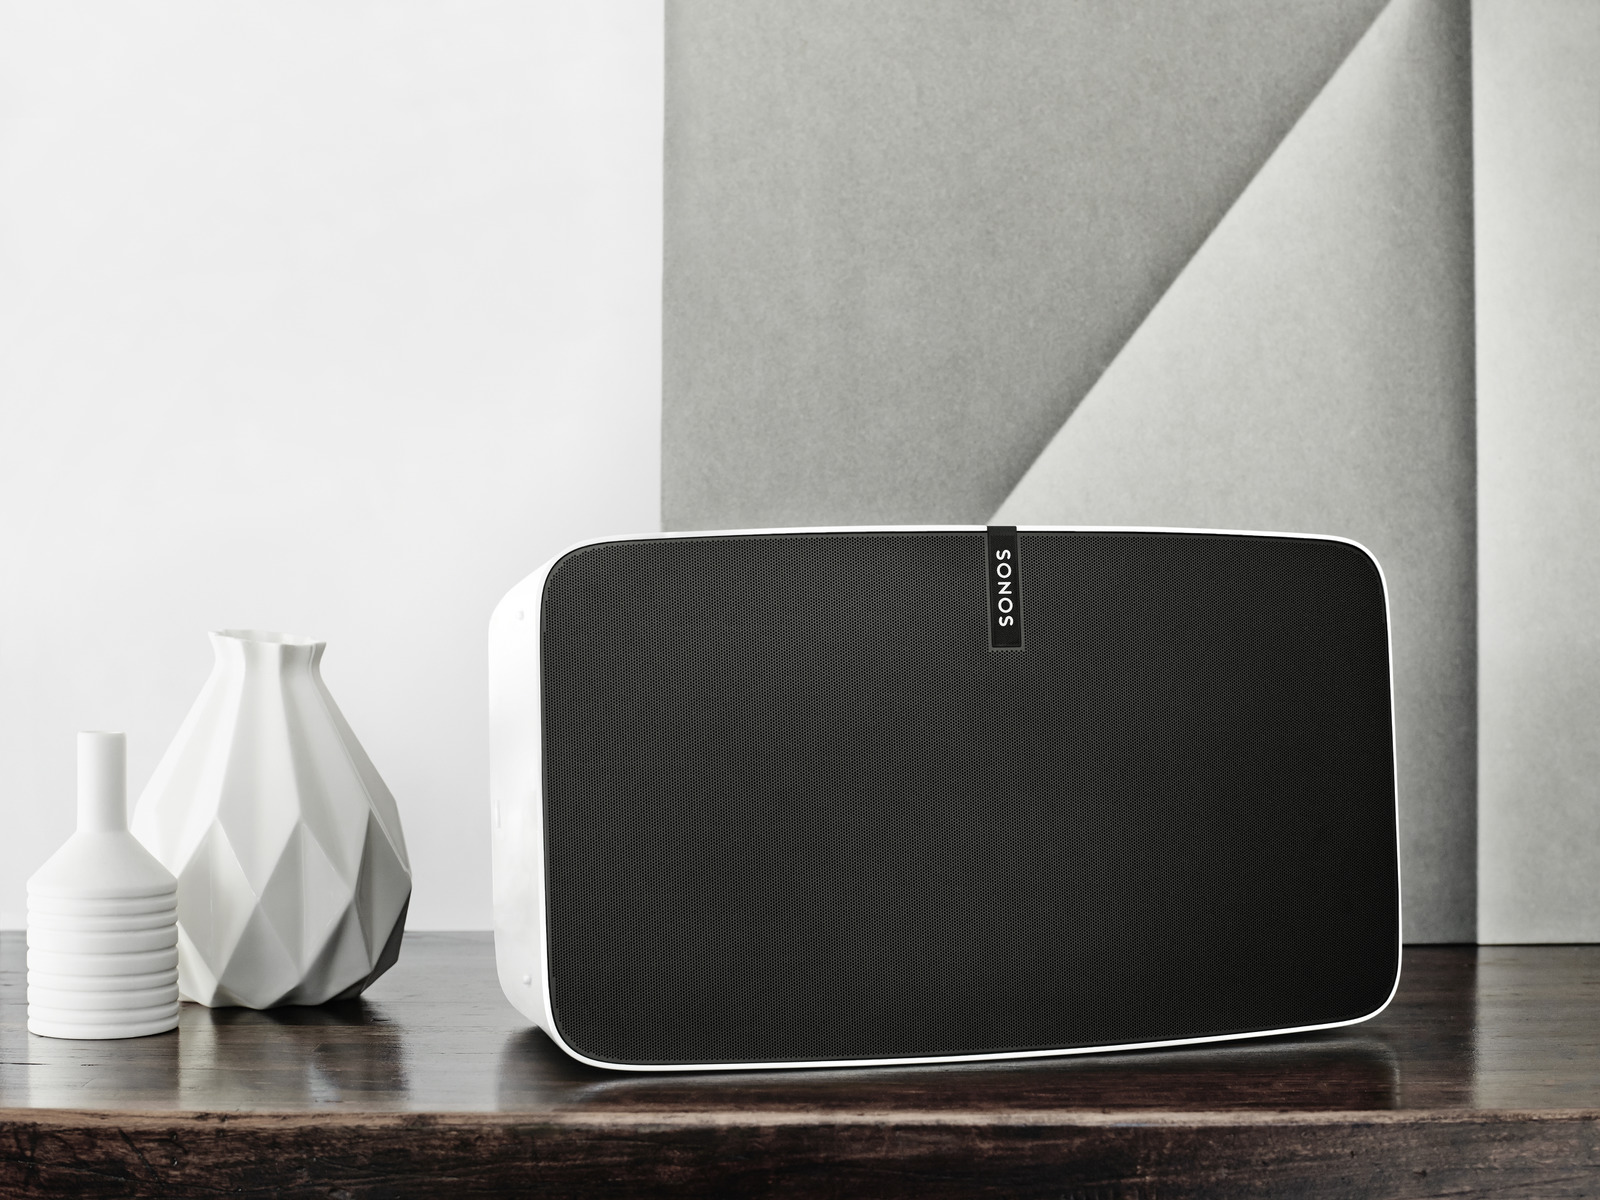 Why Choose a Sonos Music System?